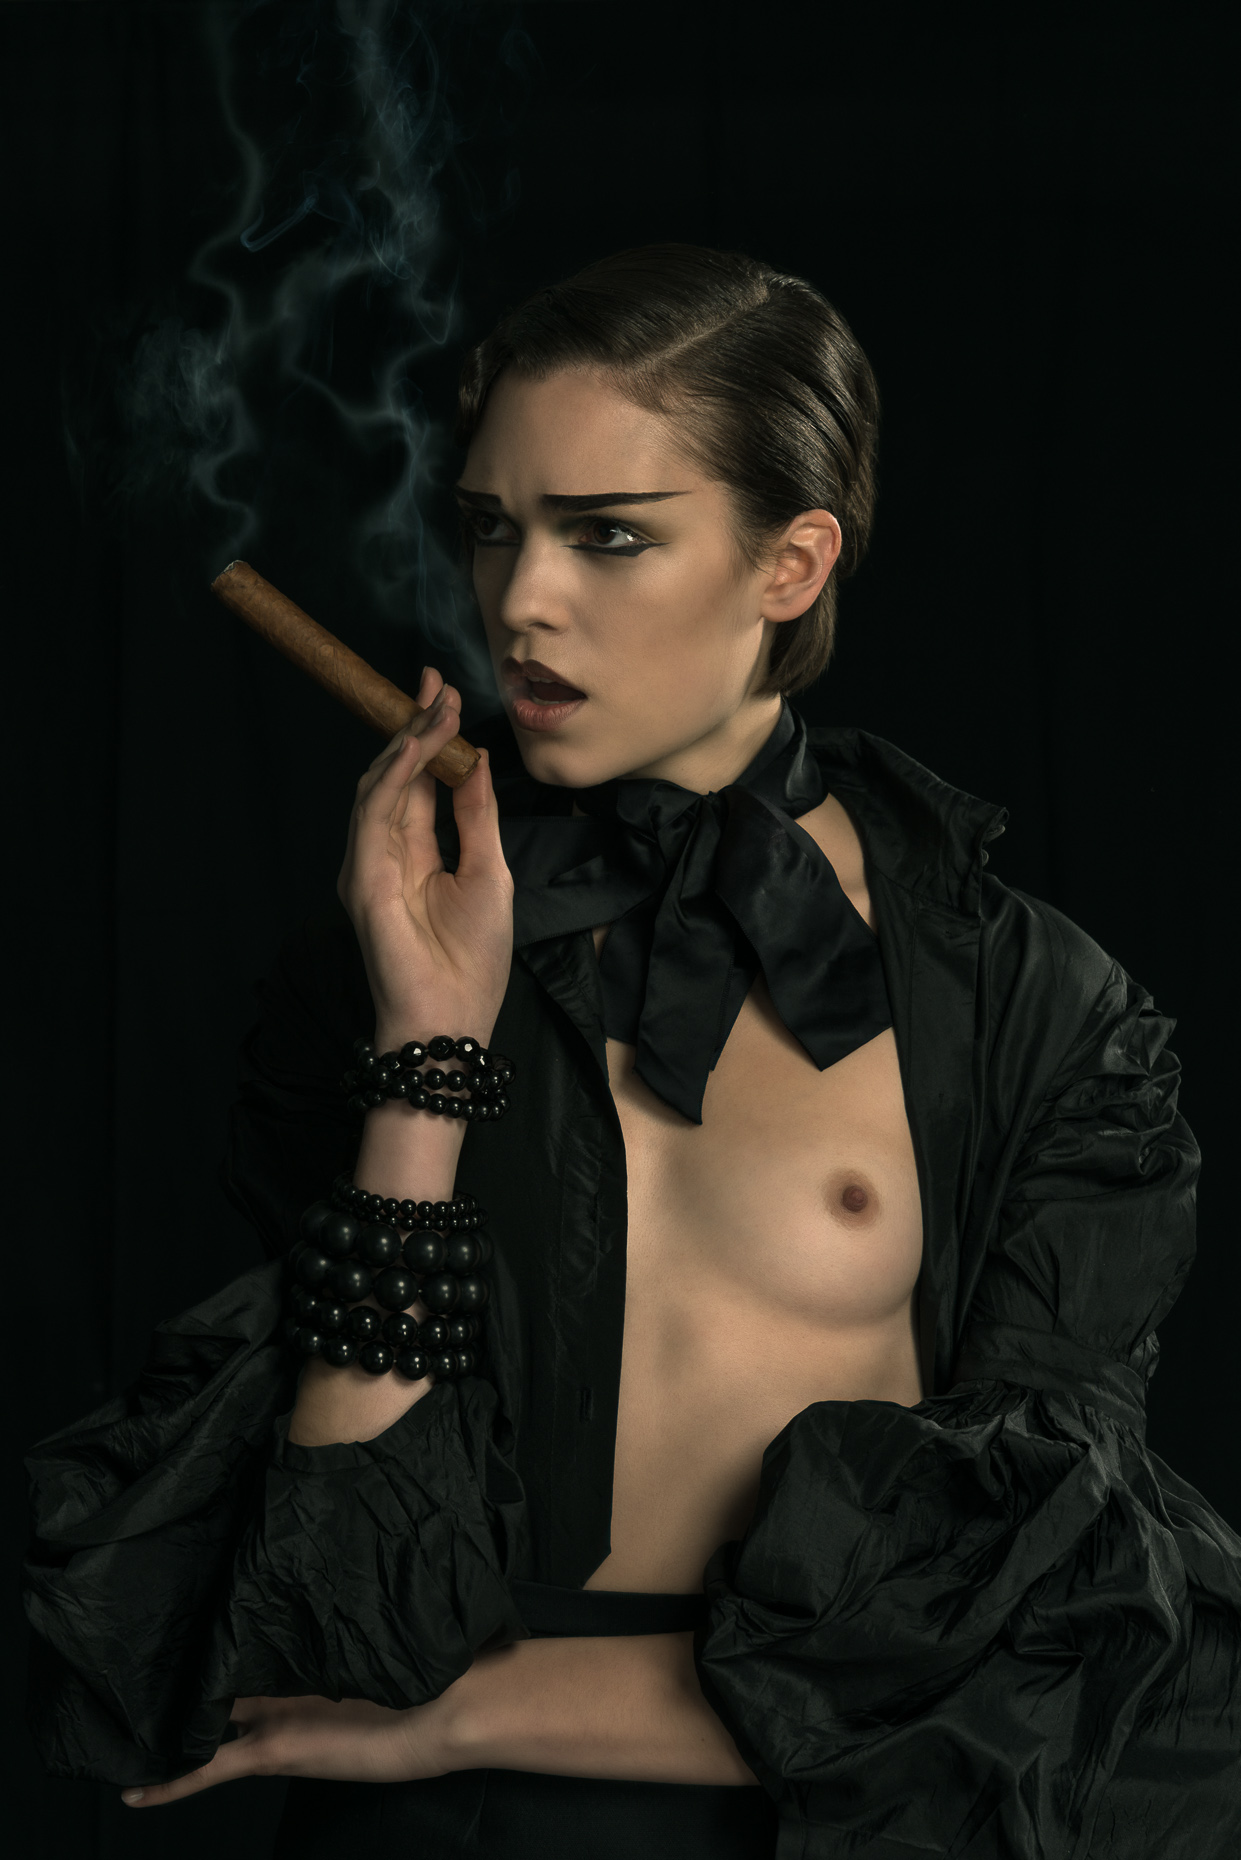 Girl-Smoking-cigar